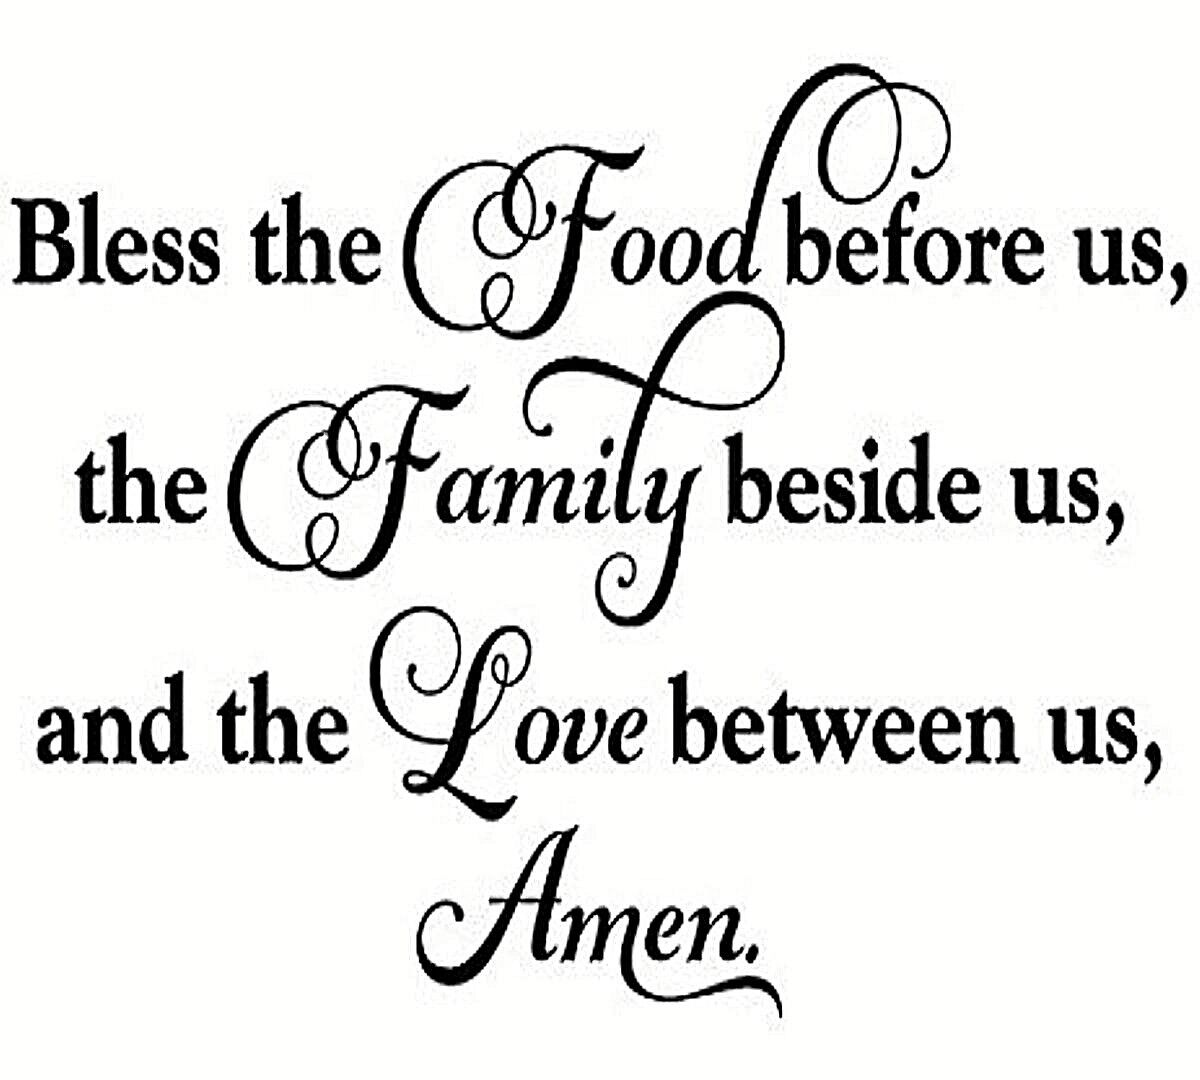 Home Decoration - BLESS THE FOOD BEFORE US Vinyl Design Wall Art Sticker Decal Decor Christian